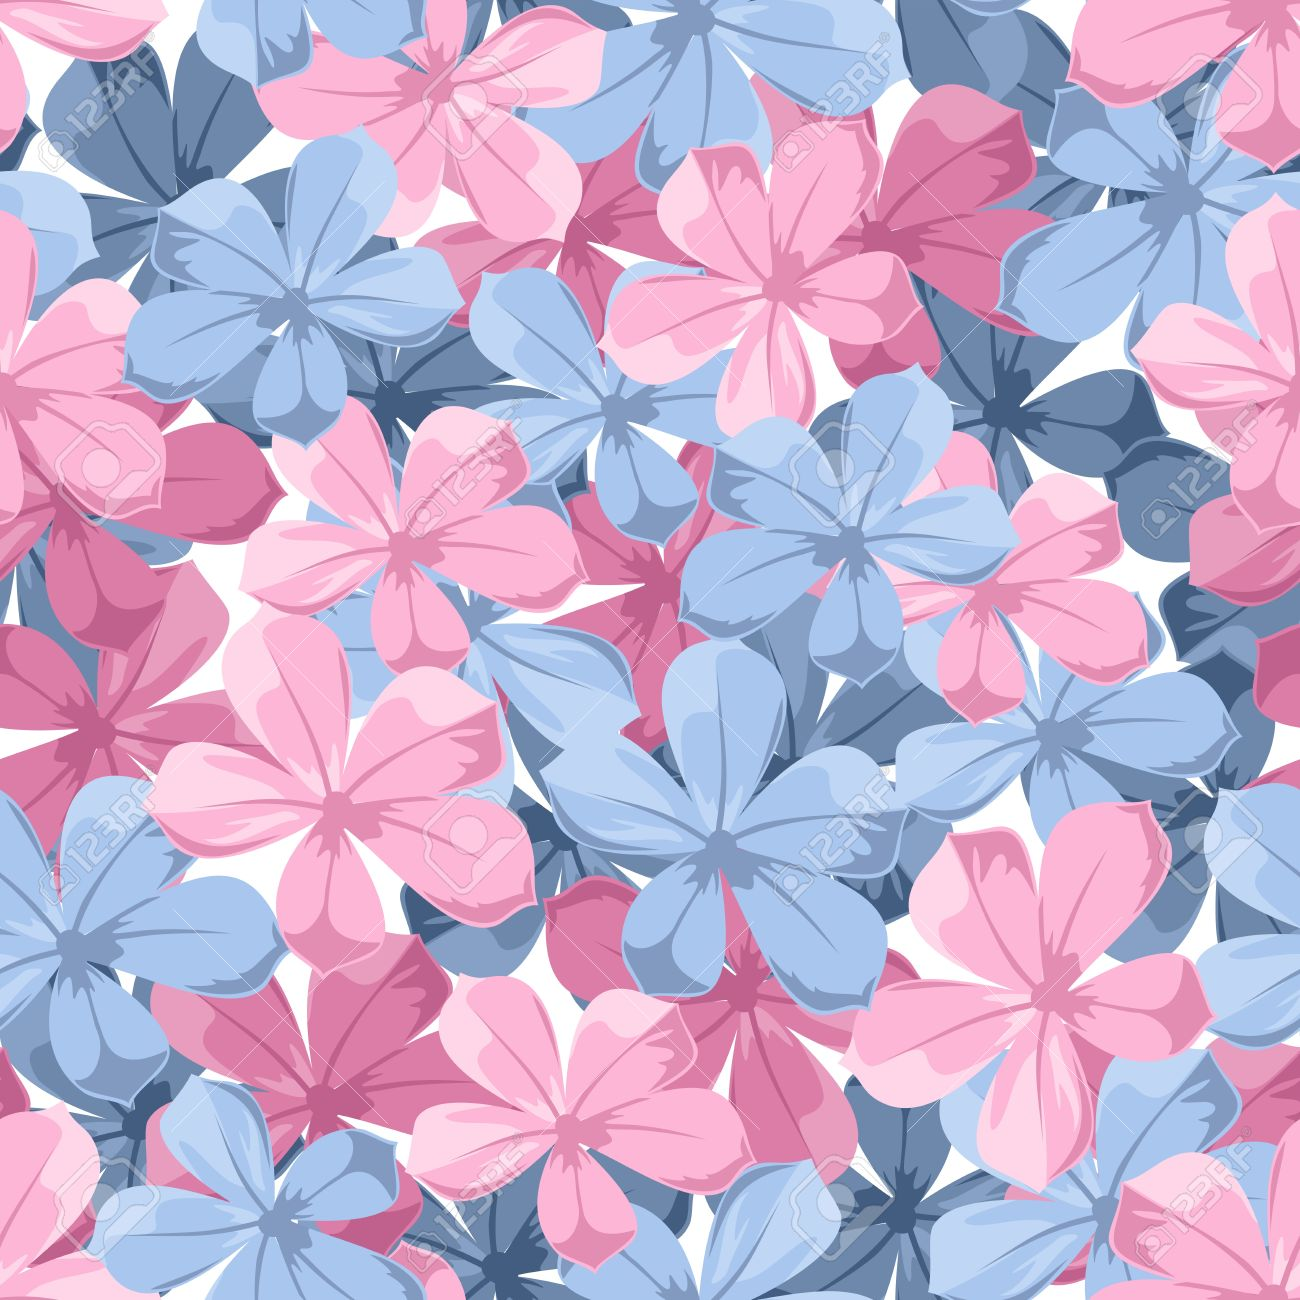 [Búsqueda] Sea Flower  20960707-seamless-background-with-blue-and-pink-flowers-vector-illustration